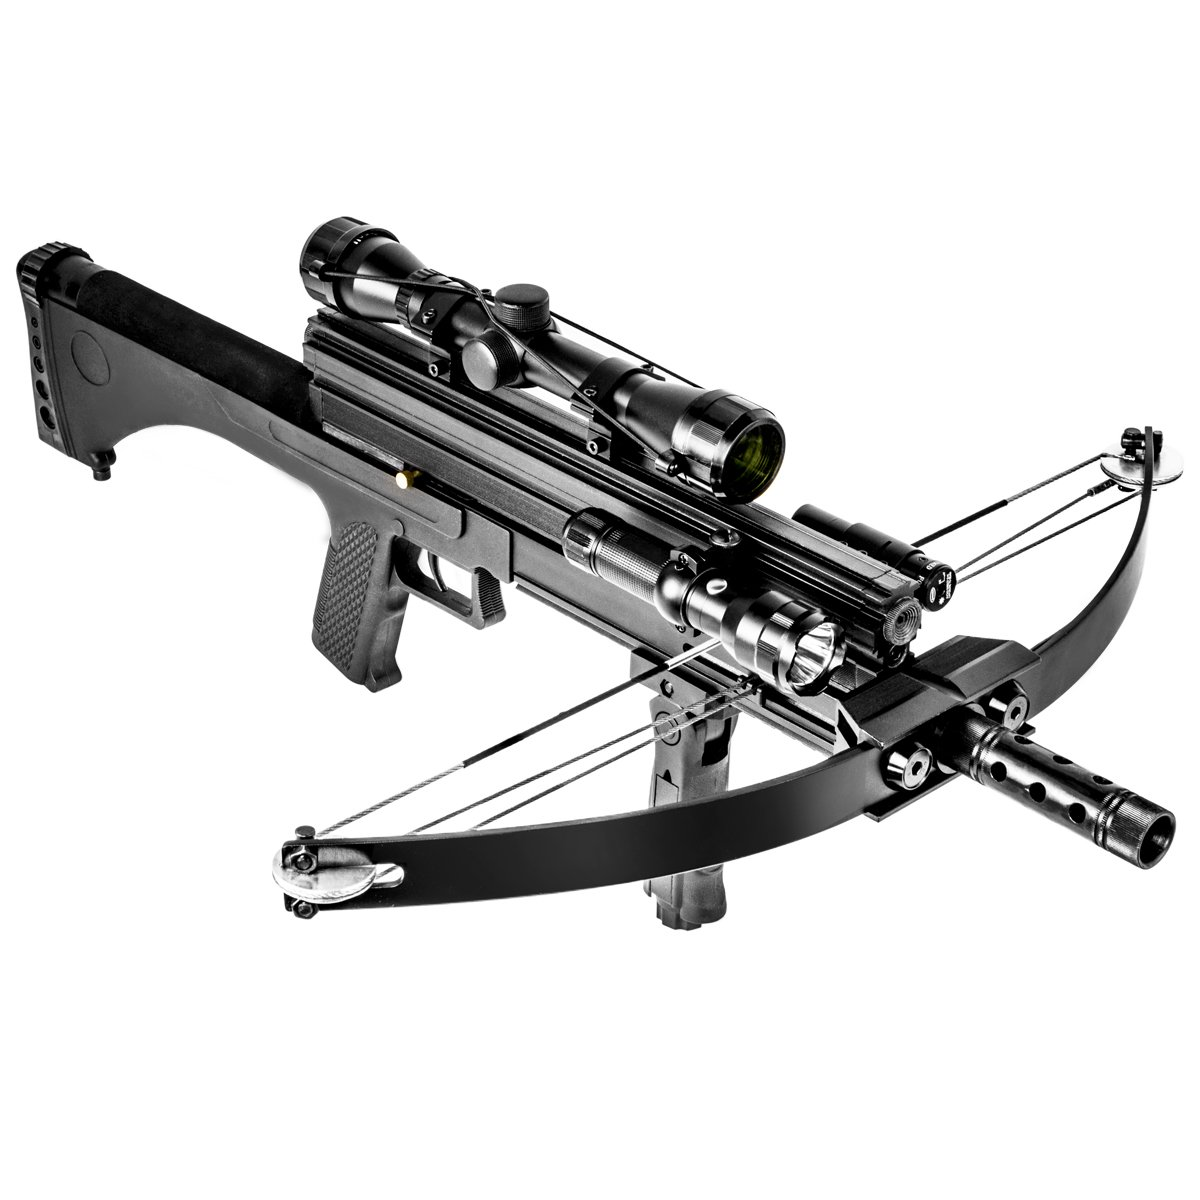 XtremepowerUS Multifunctional Crossbow 80 lbs 160 fps Hunting Equipment 200 Magazine Capacity by XtremepowerUS (Image #1)